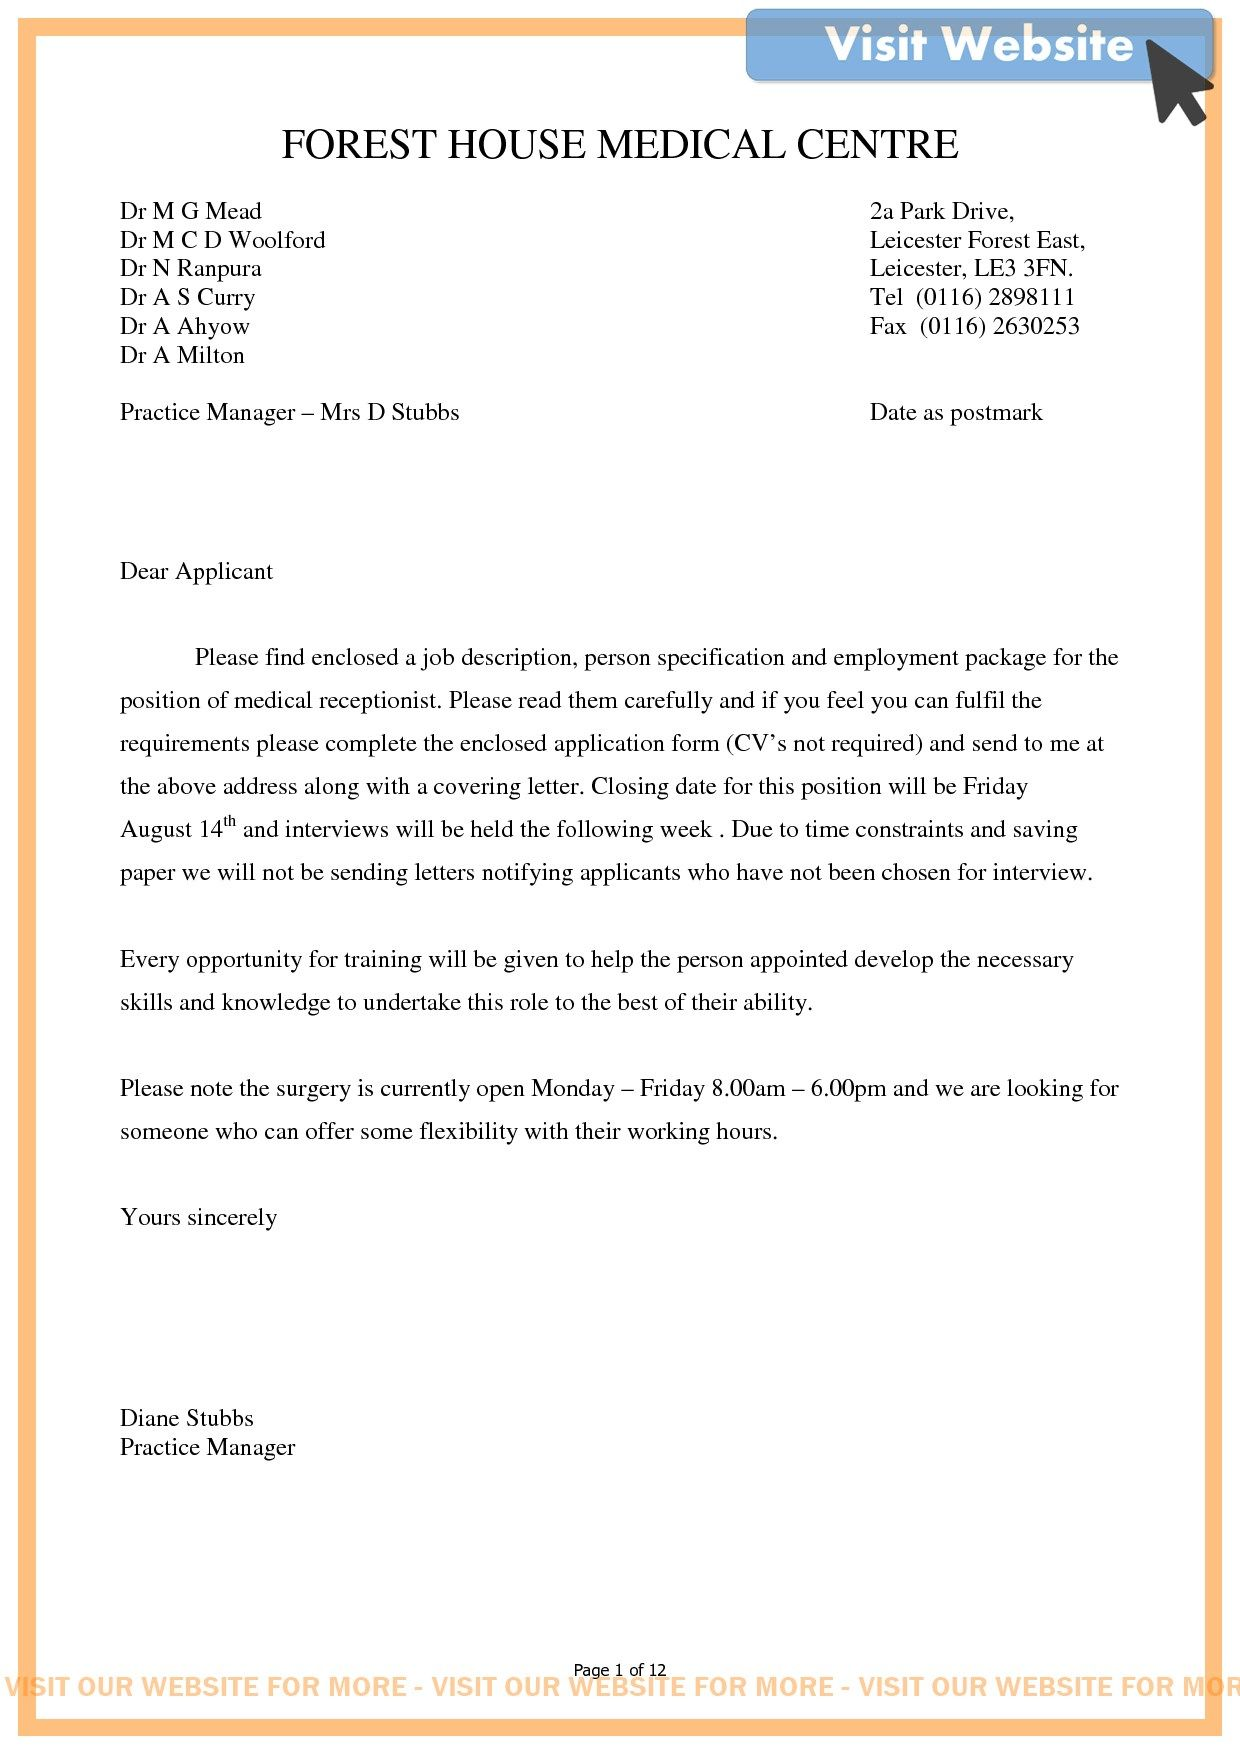 Firefighting Cover Letter Example In 2020 Cover Letter For Resume Cover Letter Example Cover Letter Sample